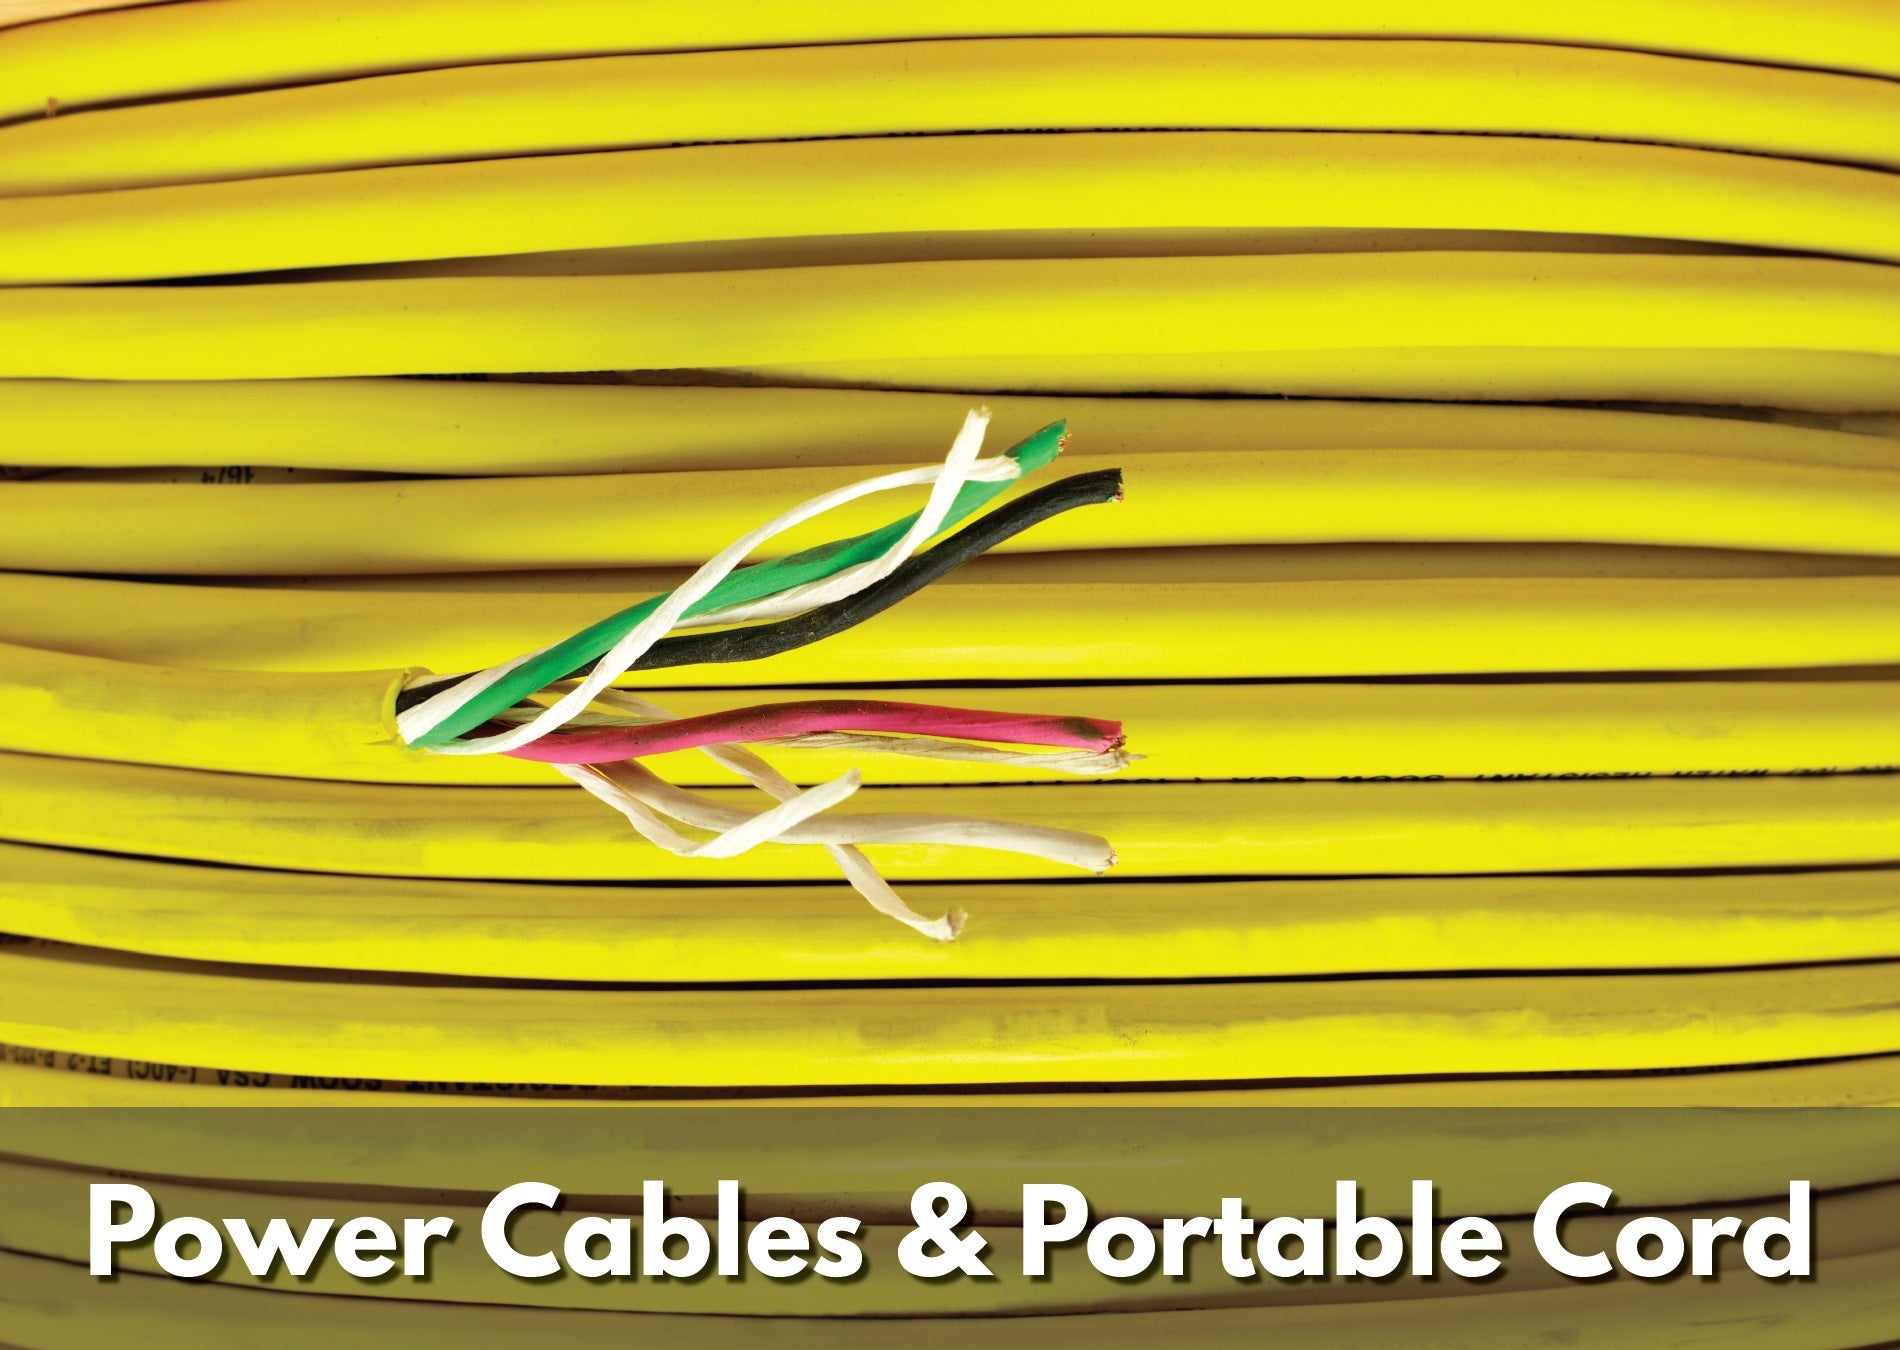 Texcan - View All Products - Power Cables & Portable Cord.jpg